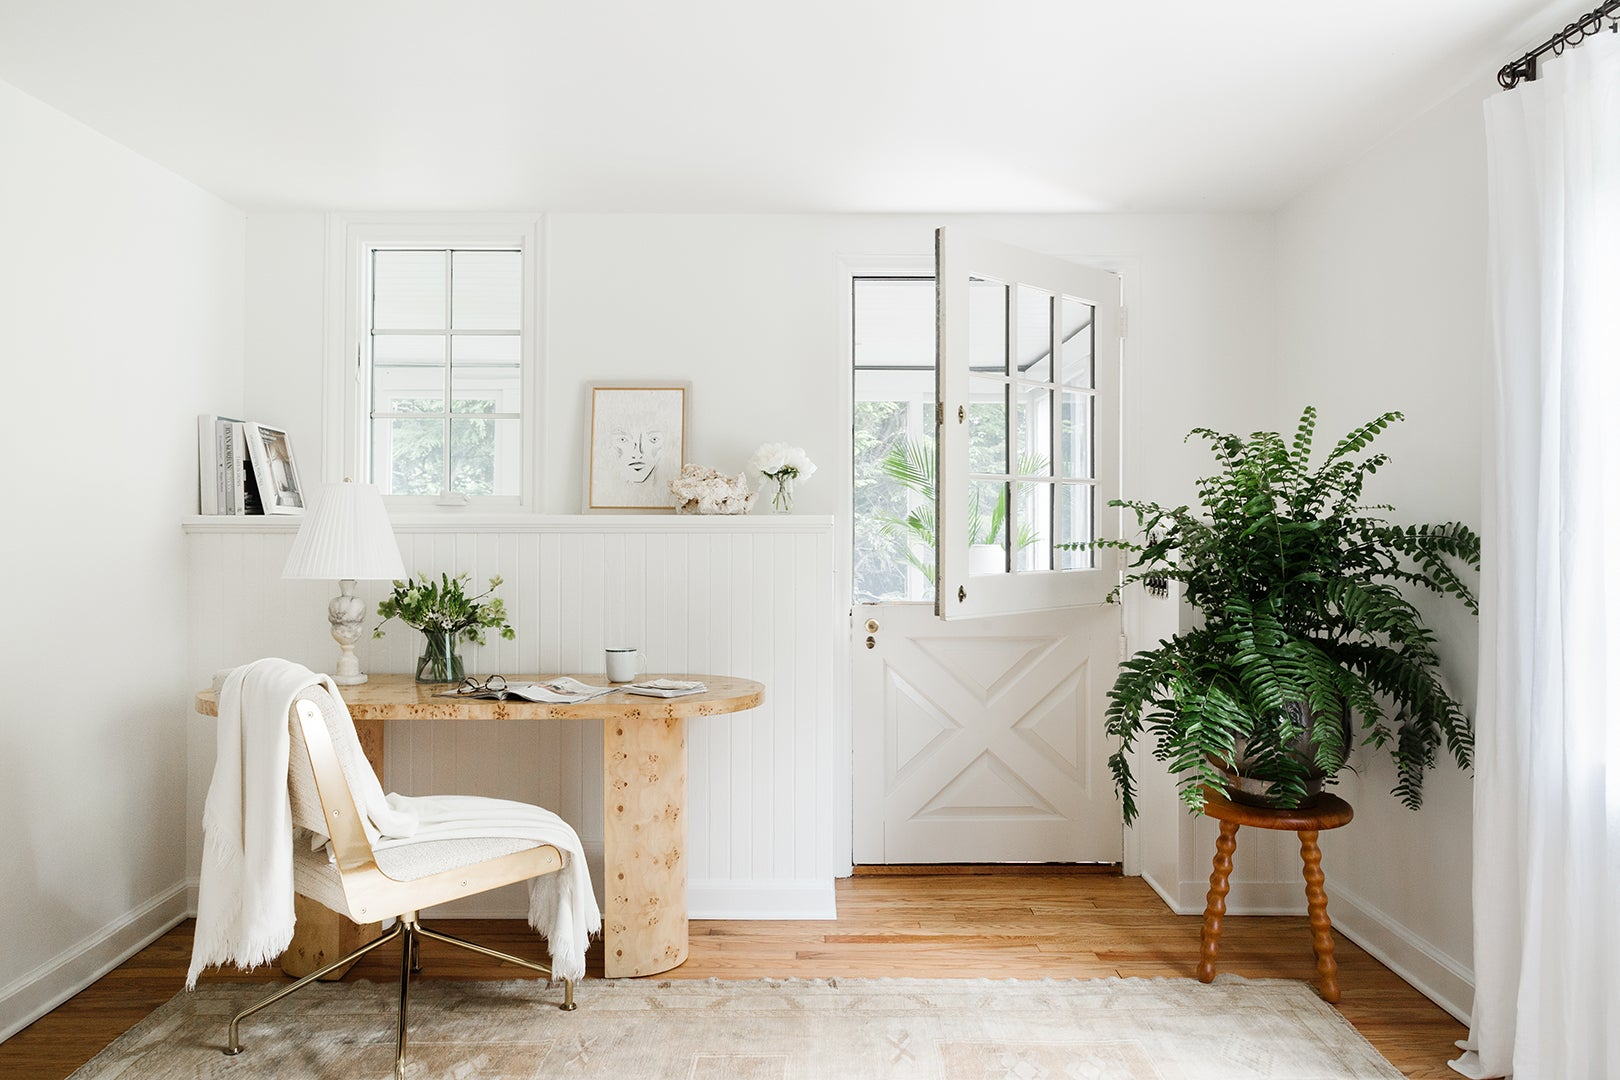 00-FEATURE-Shelby-Girard-Connecticut-home-tour-domino